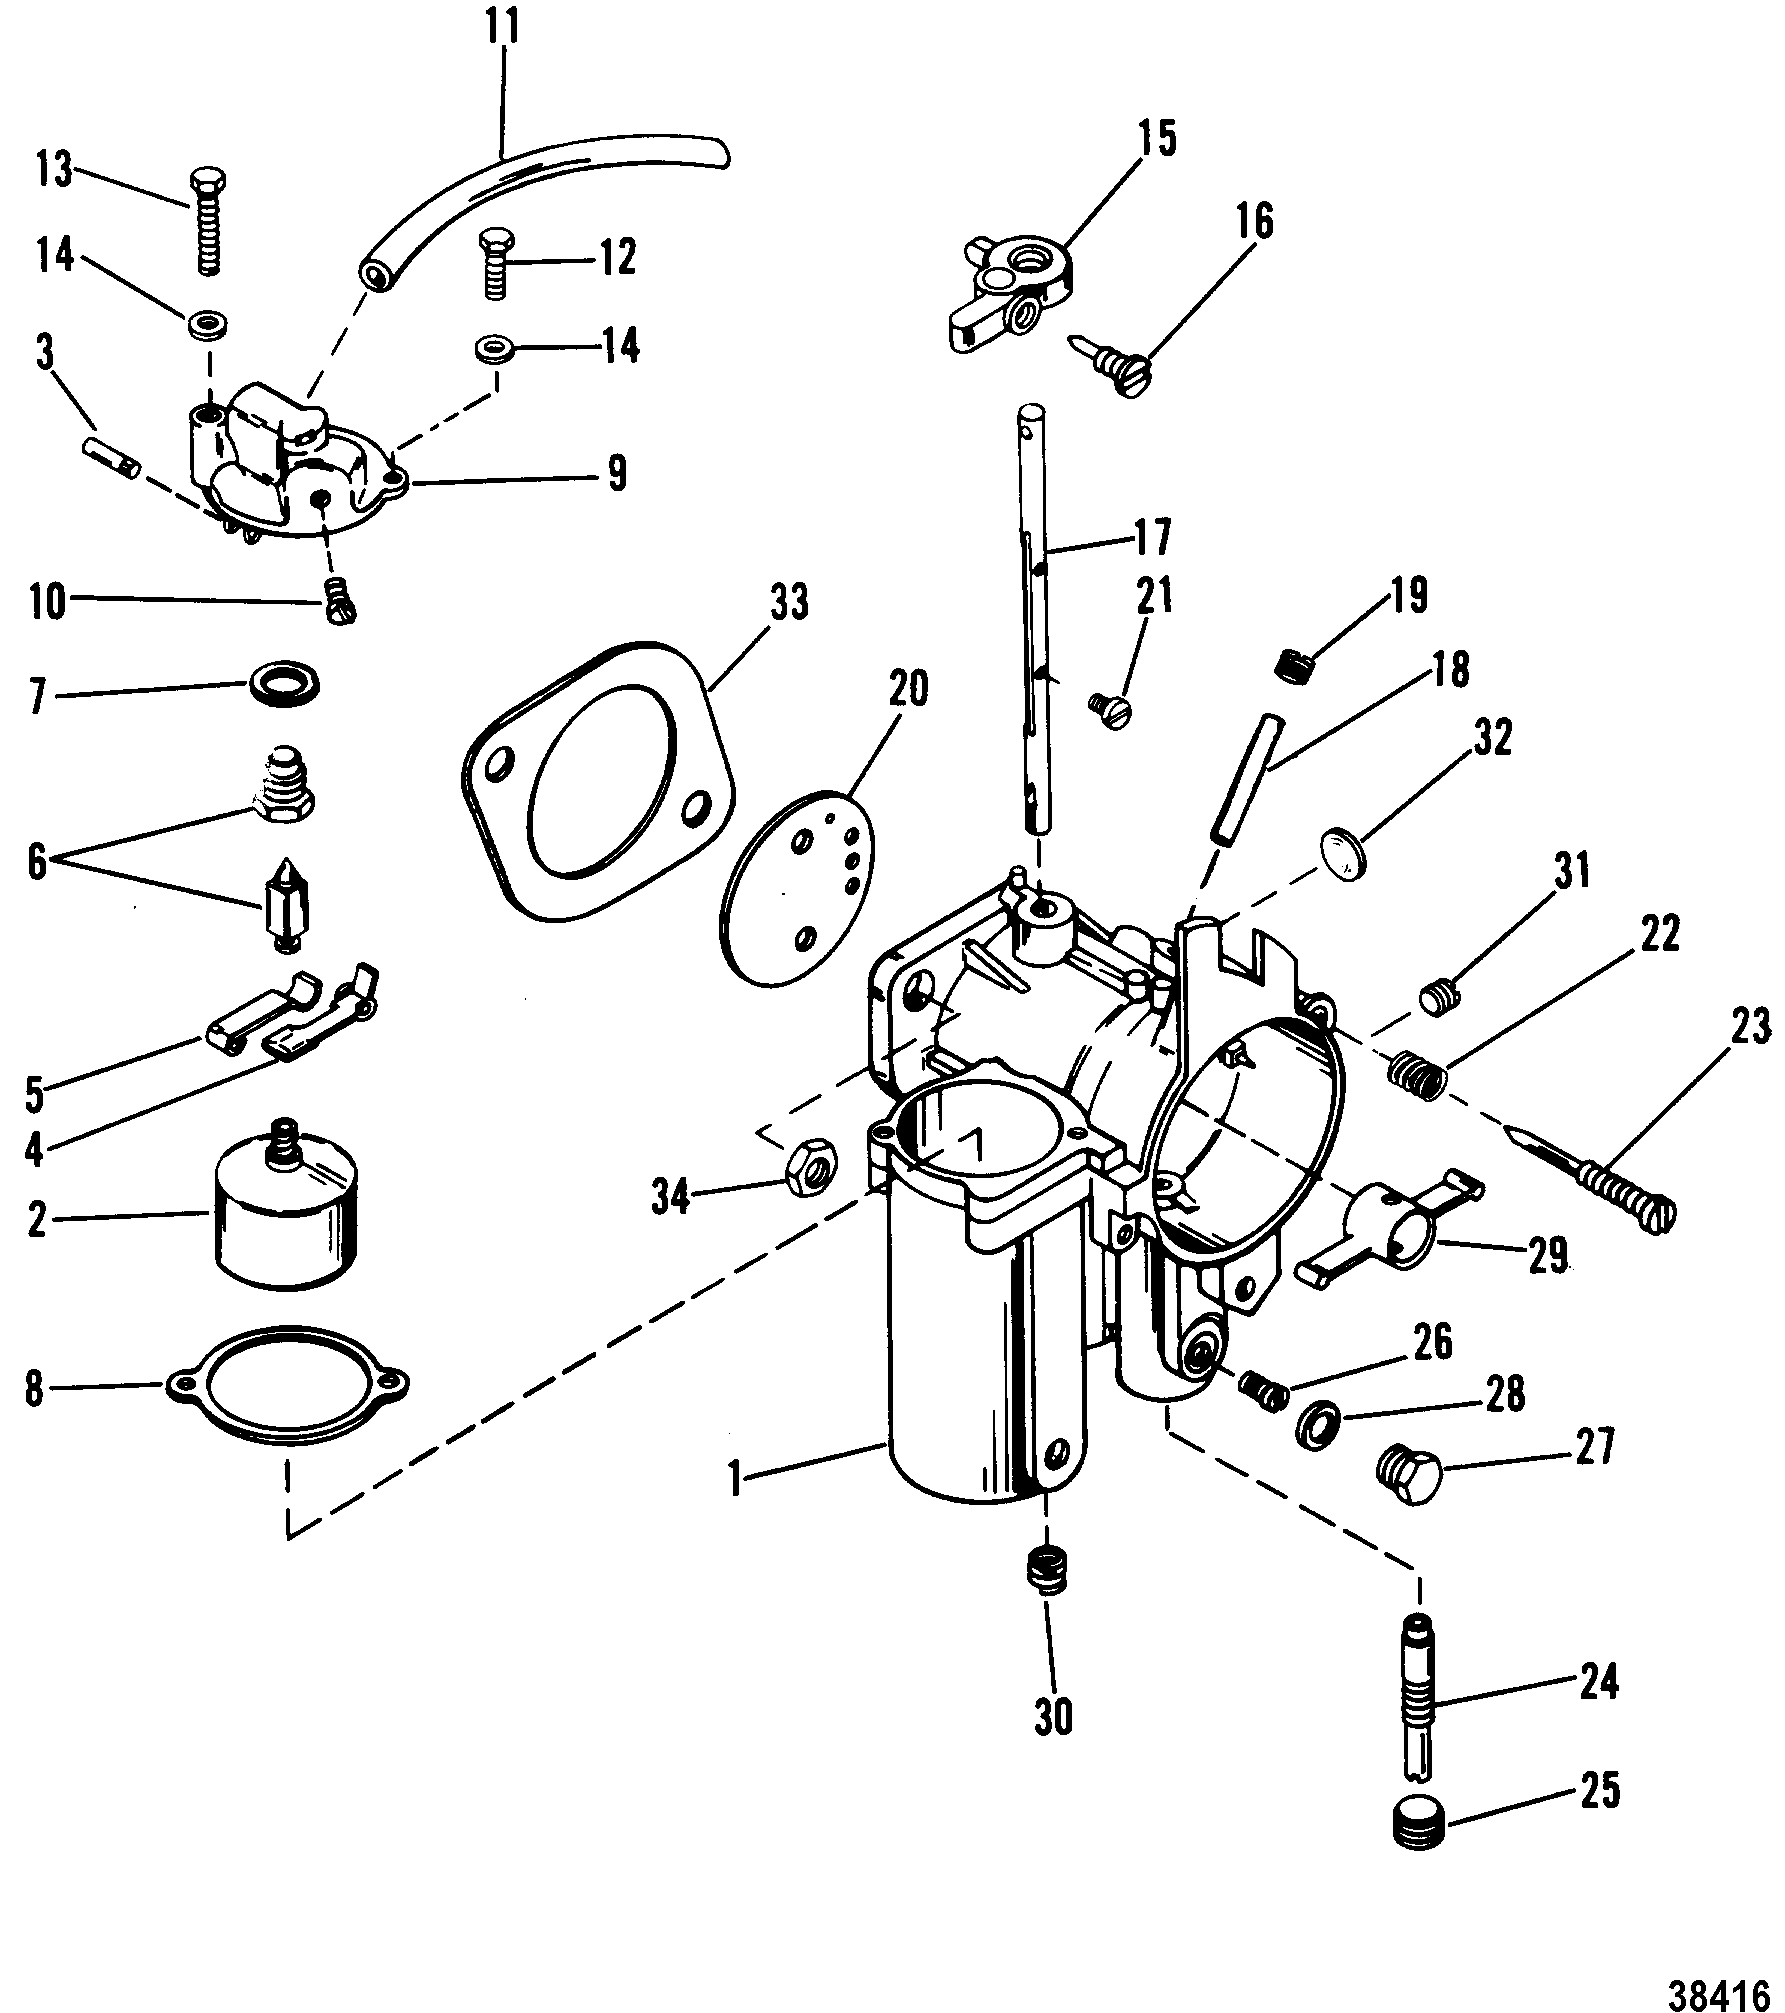 Chrysler Outboard Lower Unit Diagram | Best Wiring Liry on 90 hp mariner outboard, 90 hp johnson wiring diagram, 90 hp force outboard motor, mercury outboard ignition switch wiring diagram, 90 hp force outboard diagram, 90 hp mercury outboard engine, 9.9 mercury outboard parts diagram, 90 hp 4 stroke mercury lower unit diagram, outboard engine wiring diagram, mercury 500 outboard wiring diagram, mercury mariner wiring diagram, yamaha outboard wiring diagram, mercury 70 hp wiring diagram, 1997 mercury outboard wiring diagram, mercury outboard tach wiring diagram, johnson outboard tilt trim wiring diagram, 90 hp mercury outboard flywheel, 1988 mercury outboard wiring diagram, mercury outboard control wiring diagram, 1985 mercury outboard wiring diagram,